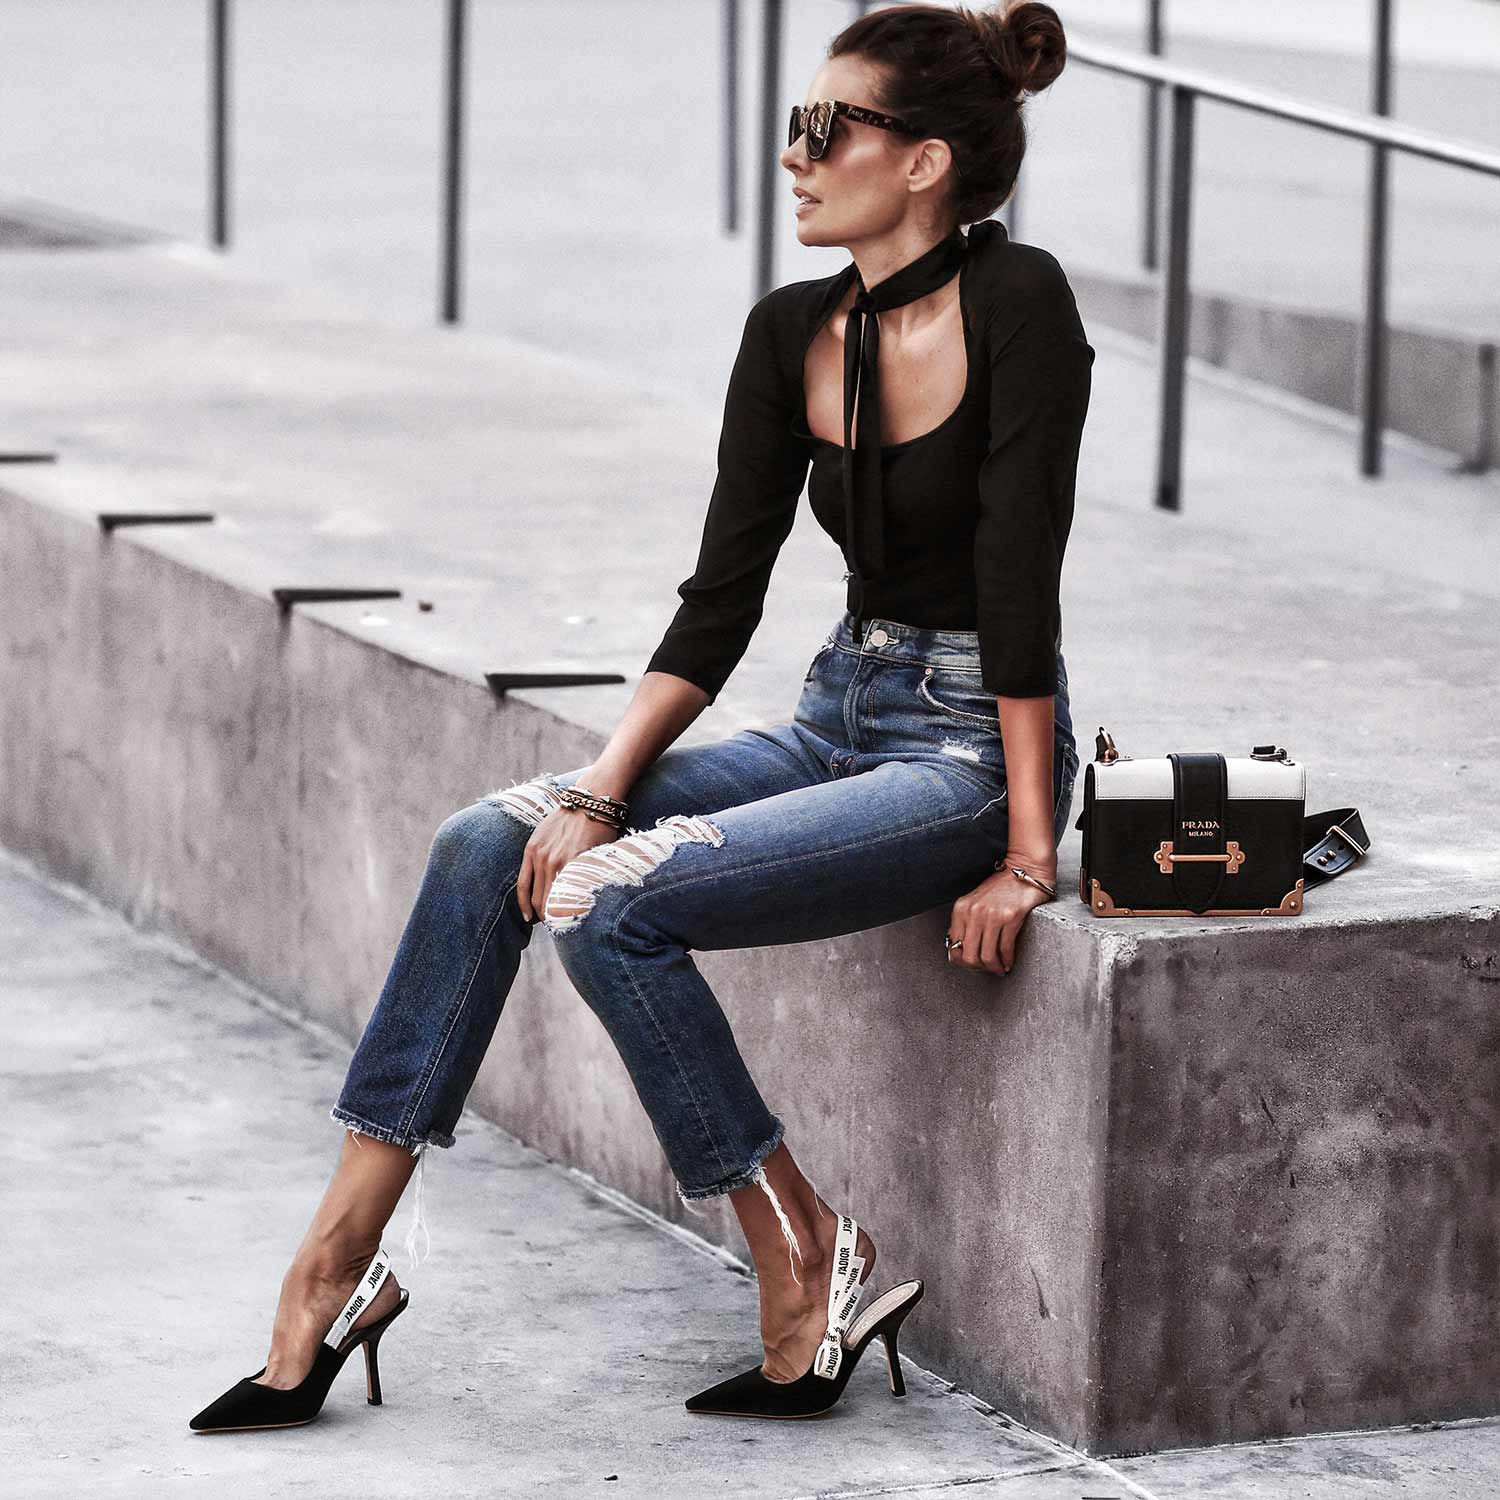 Top 10 fashion blogs - This Months Top 10 Fashion Bloggers In Denim